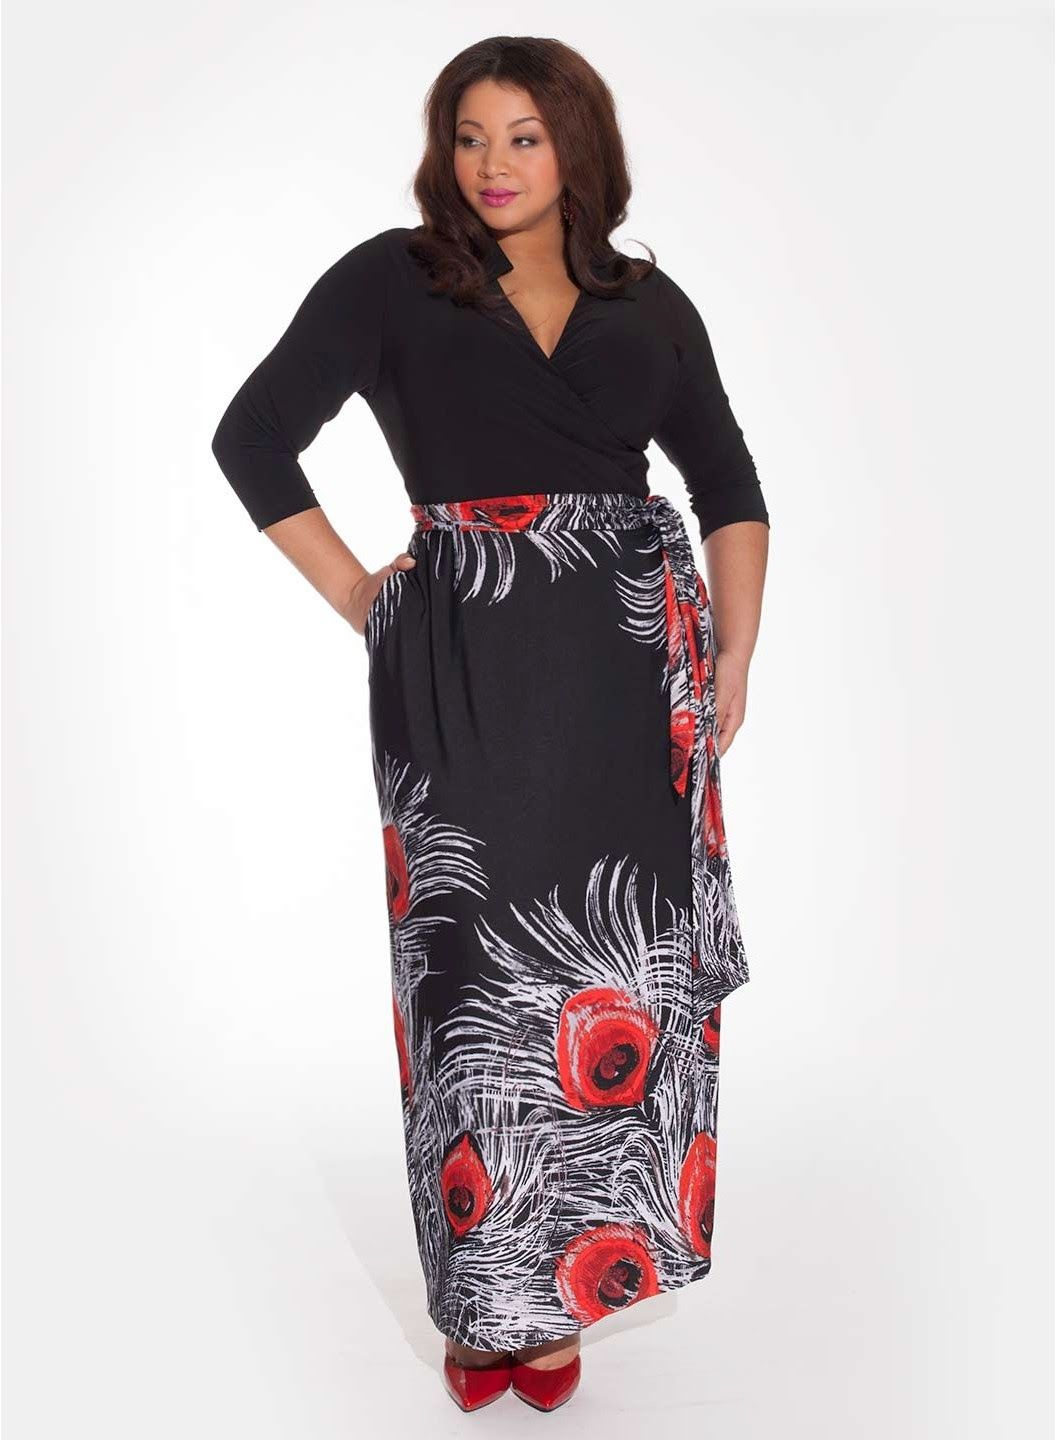 a54bbdd5a40 CSC® studio Cap-Sleeve Mock Wrap Dress at HSN.com